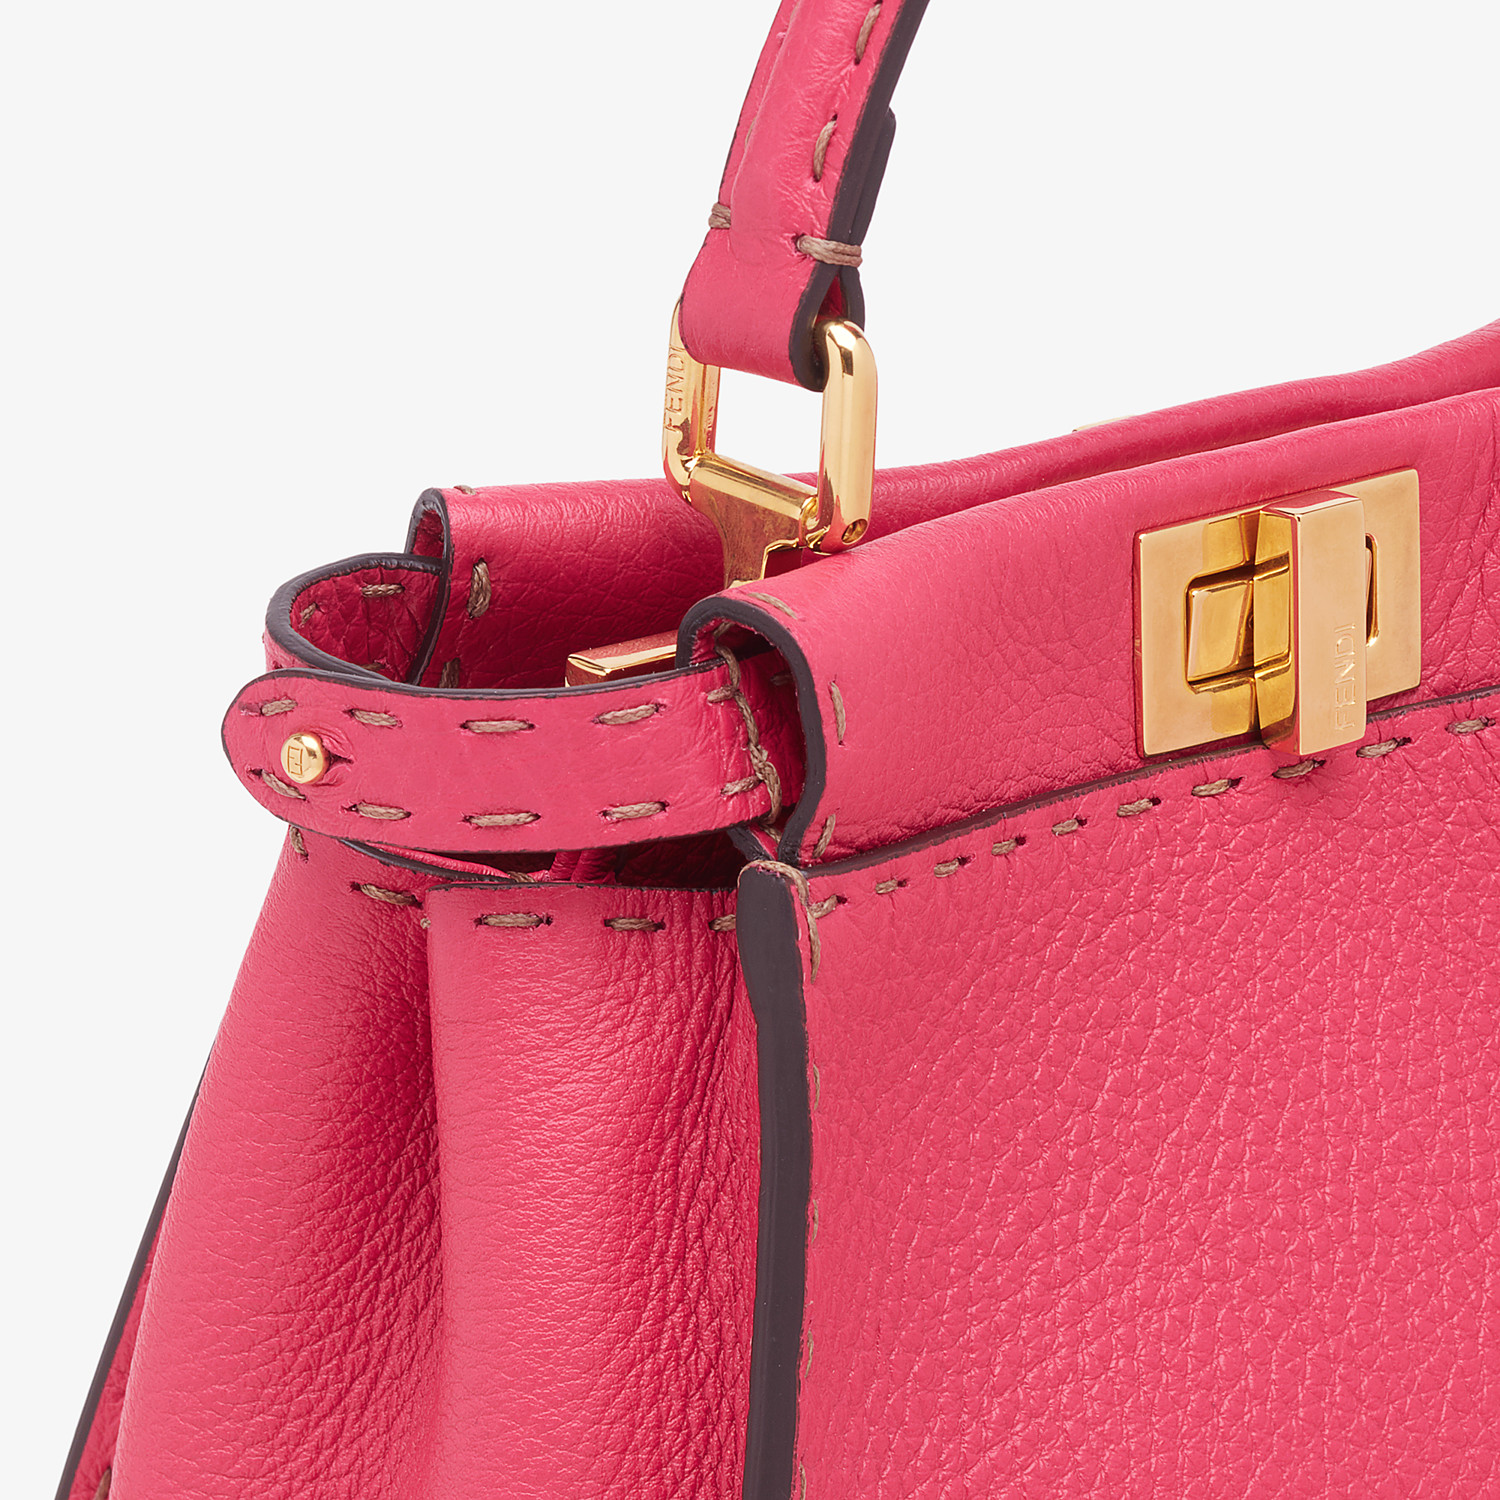 FENDI PEEKABOO ICONIC MINI - Fendi Roma Amor leather bag - view 6 detail